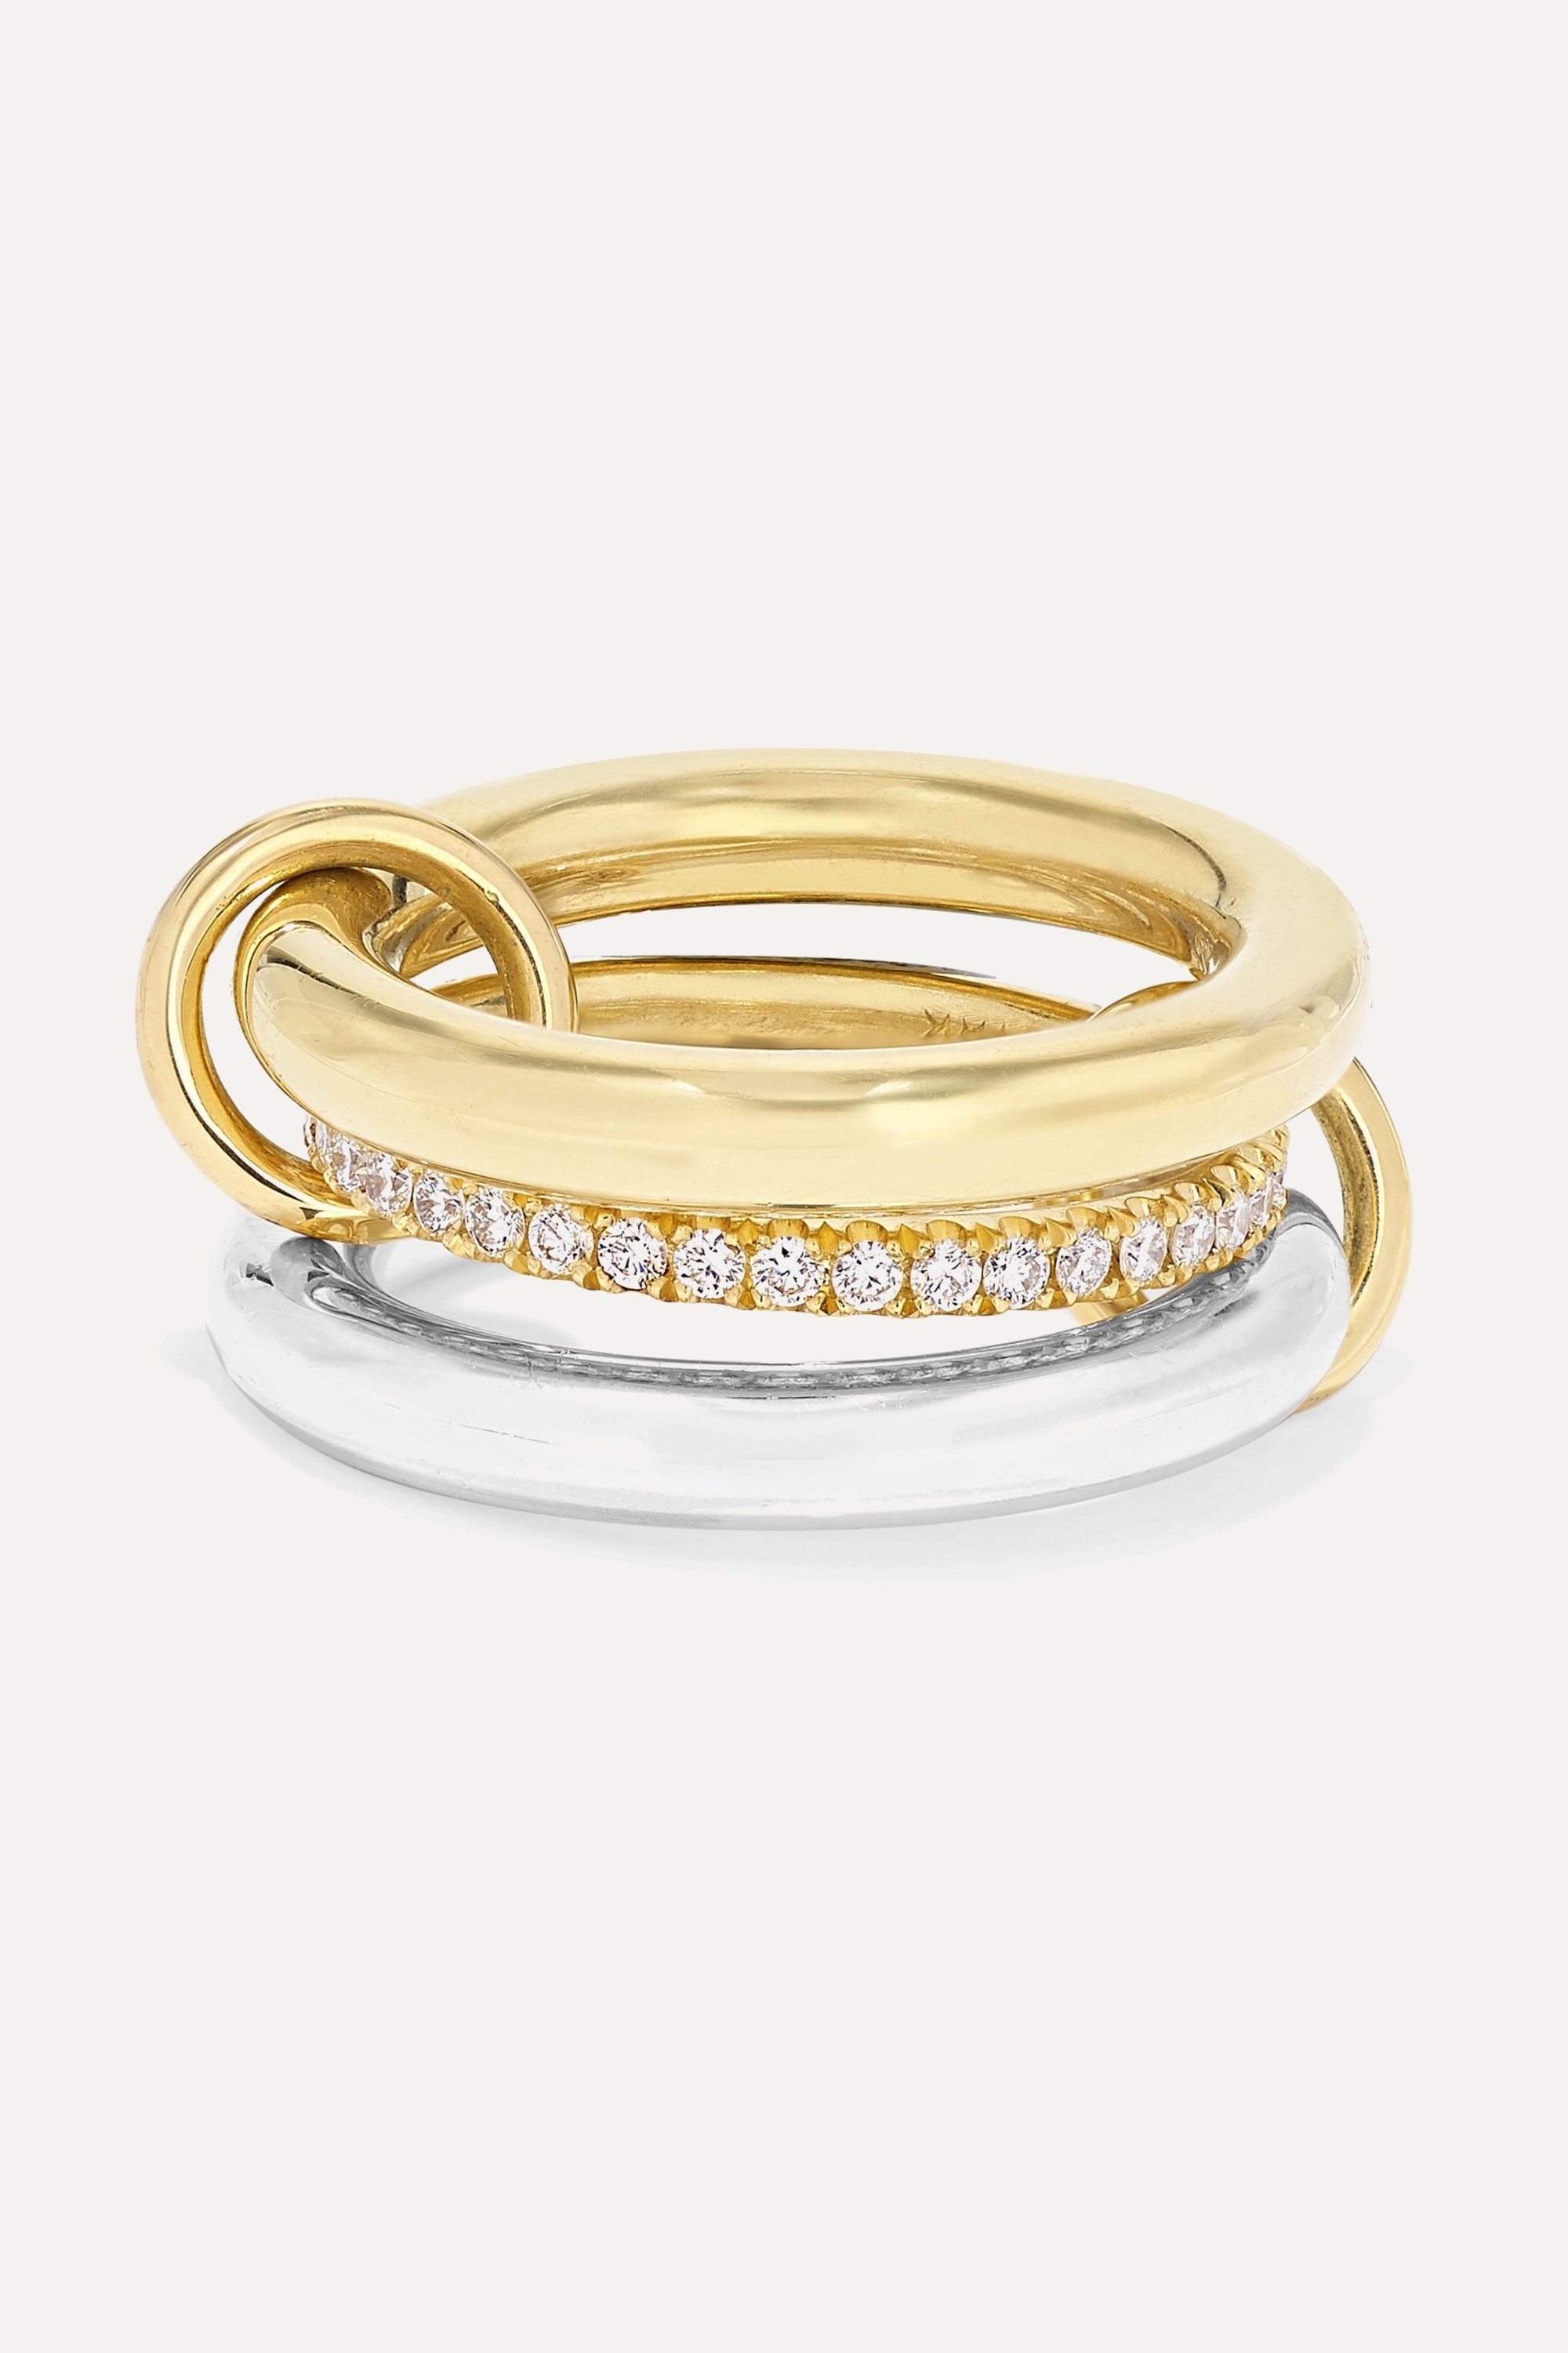 Spinelli Kilcollin Libra set of three 18-karat gold, sterling silver and diamond rings